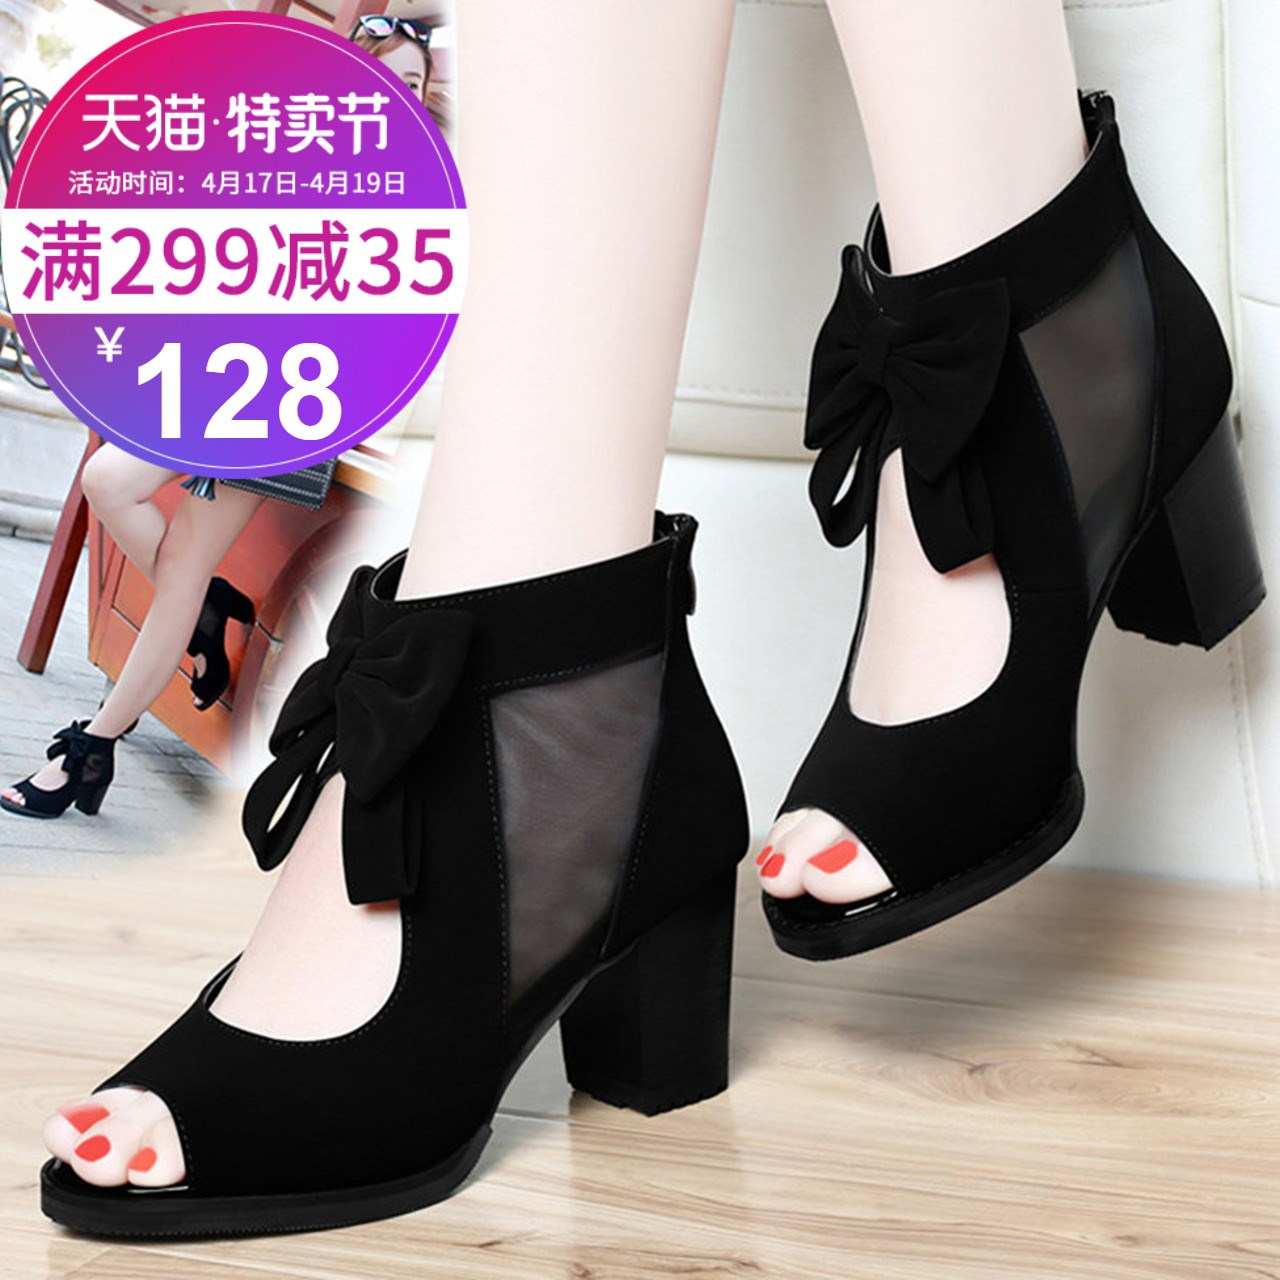 Fish mouth sandals womens summer middle heel 2020 new versatile womens shoes thick heel all season cheongsam mesh high heel shoes cool boots